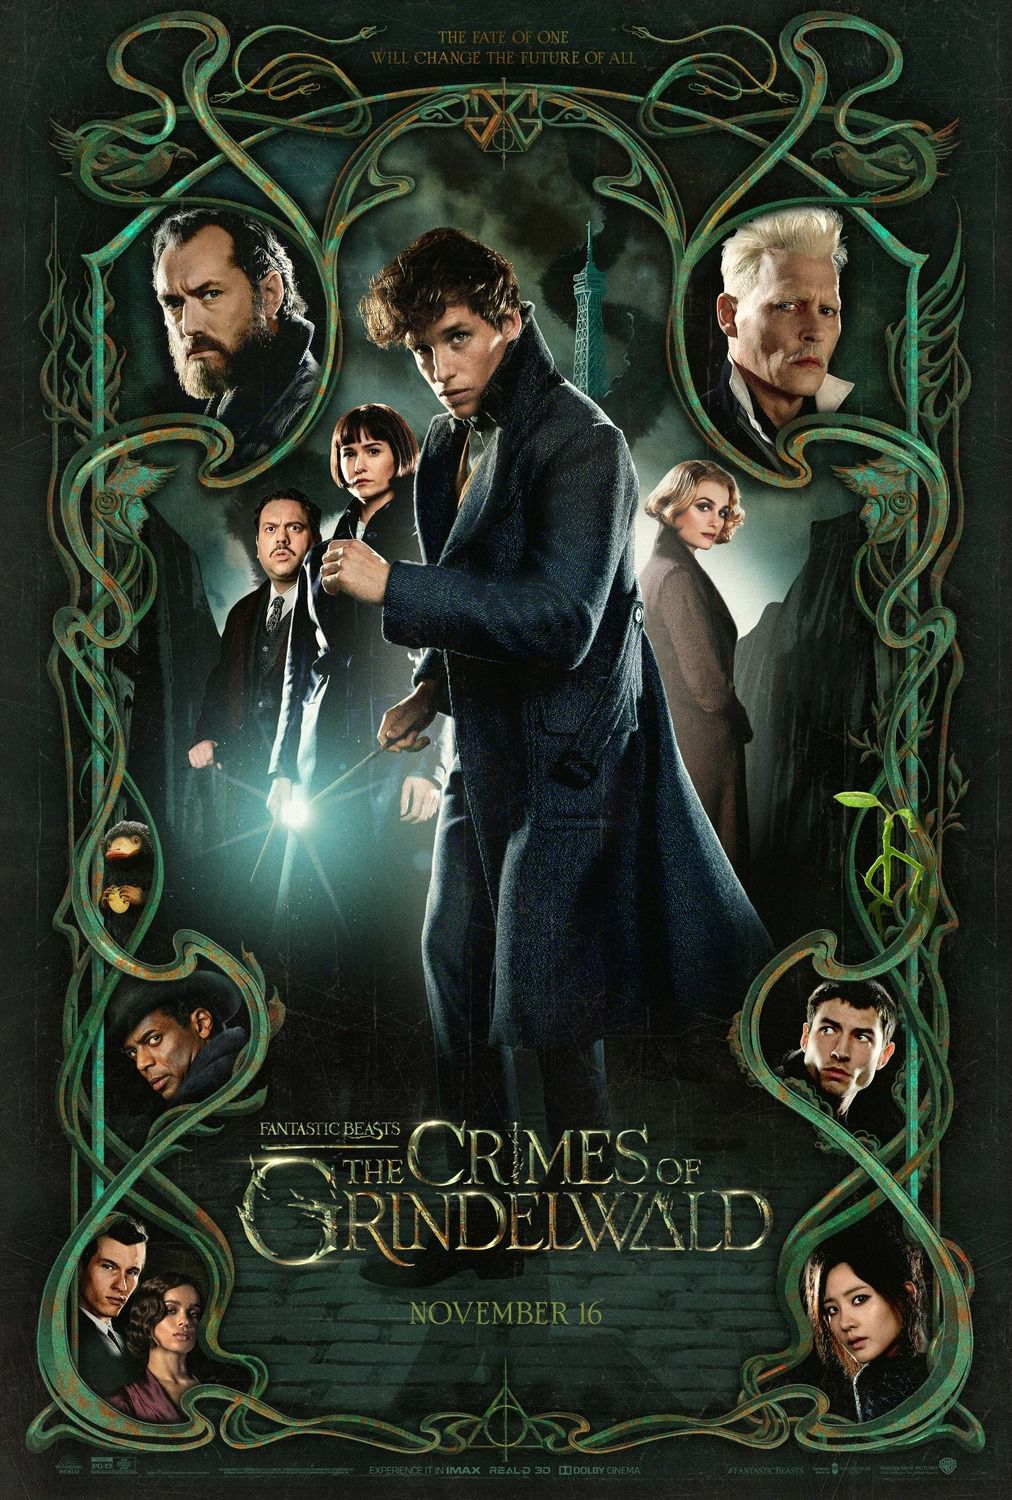 Animali Fantastici 2 e i Crimini di Grindelwald - Fantastic Beasts the Crimes of Grindelwald - Eddie Redmayne